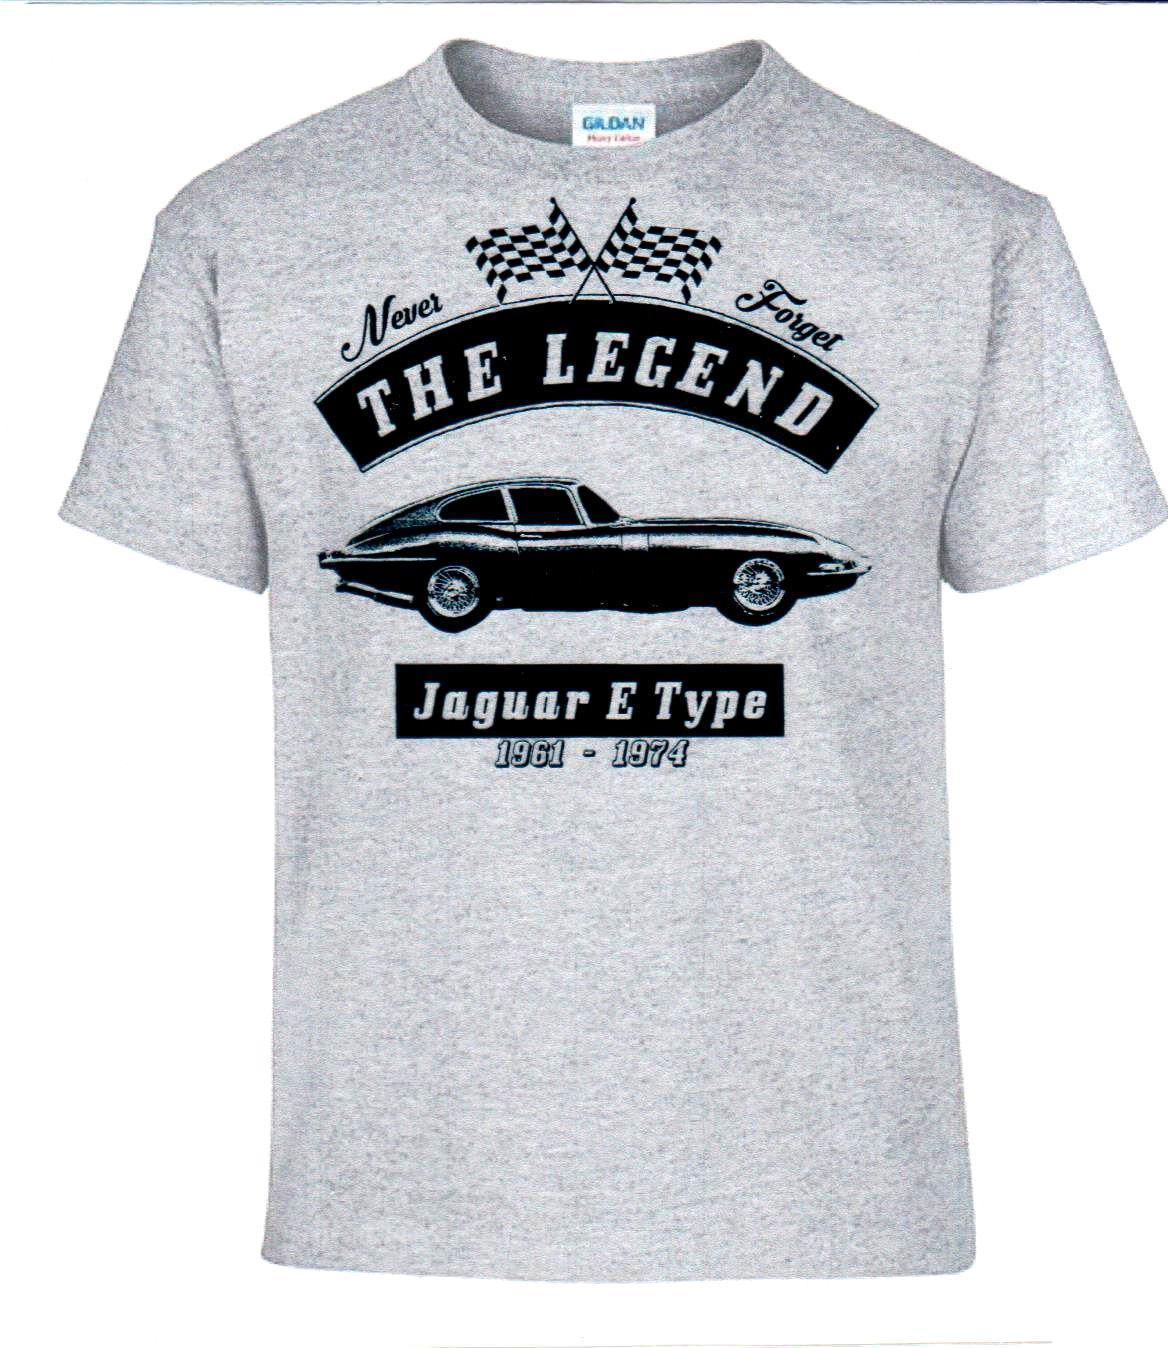 T-Shirt, Fashion Print Hochwertiges Top T-Shirt 100% Baumwolle E Type, Oldtimer, Youngtimer